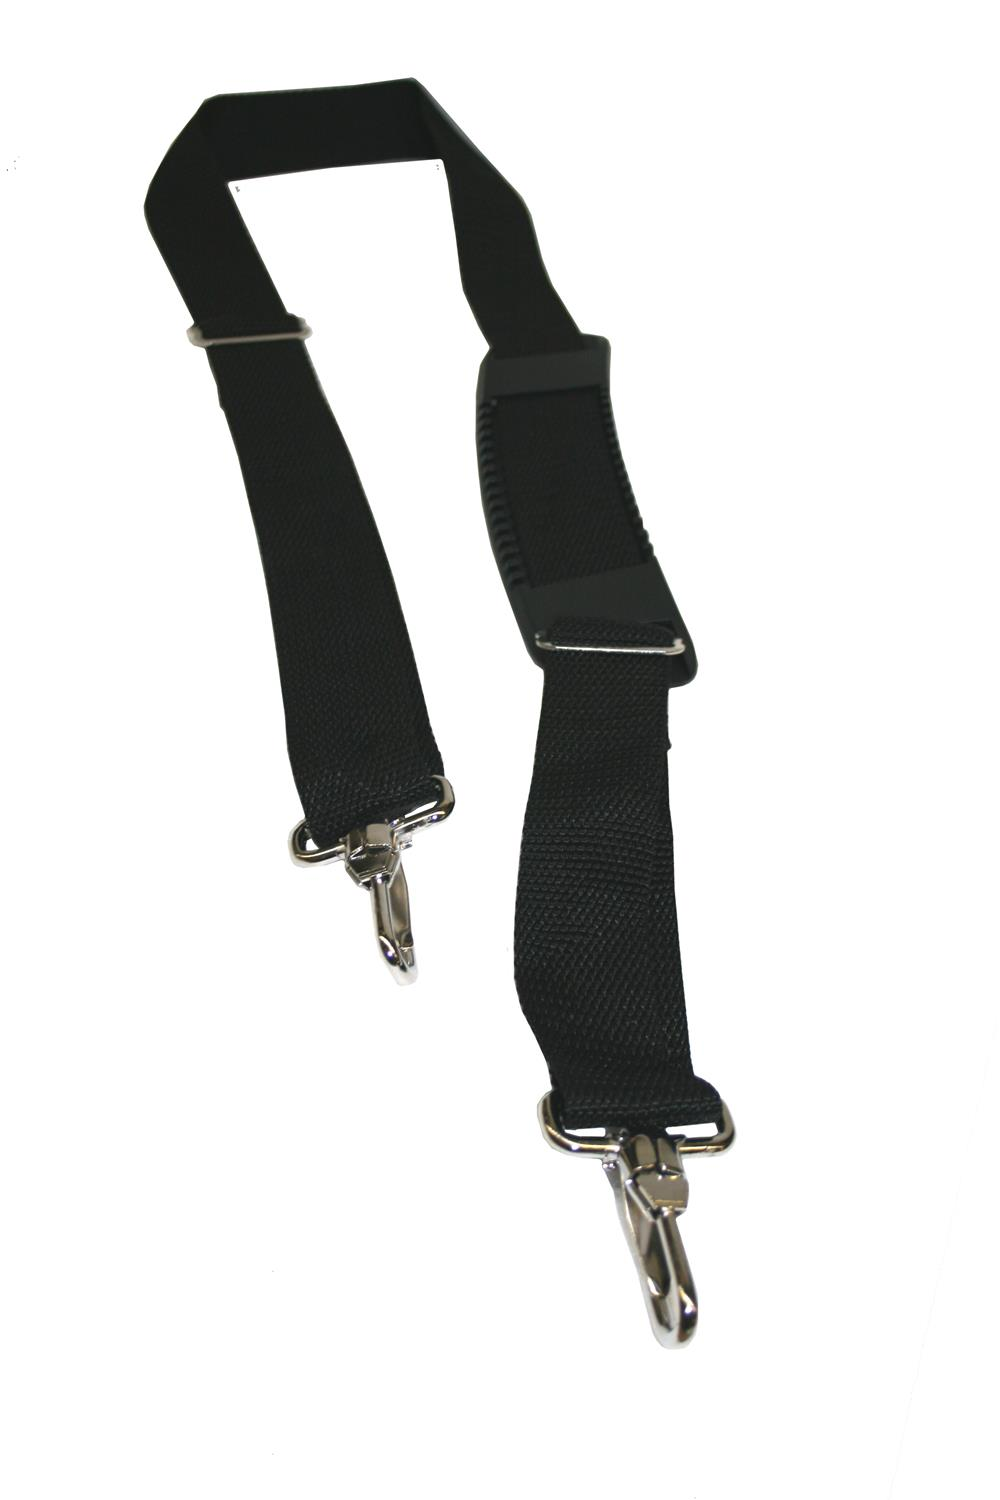 quic strap straps ziamatic corporation